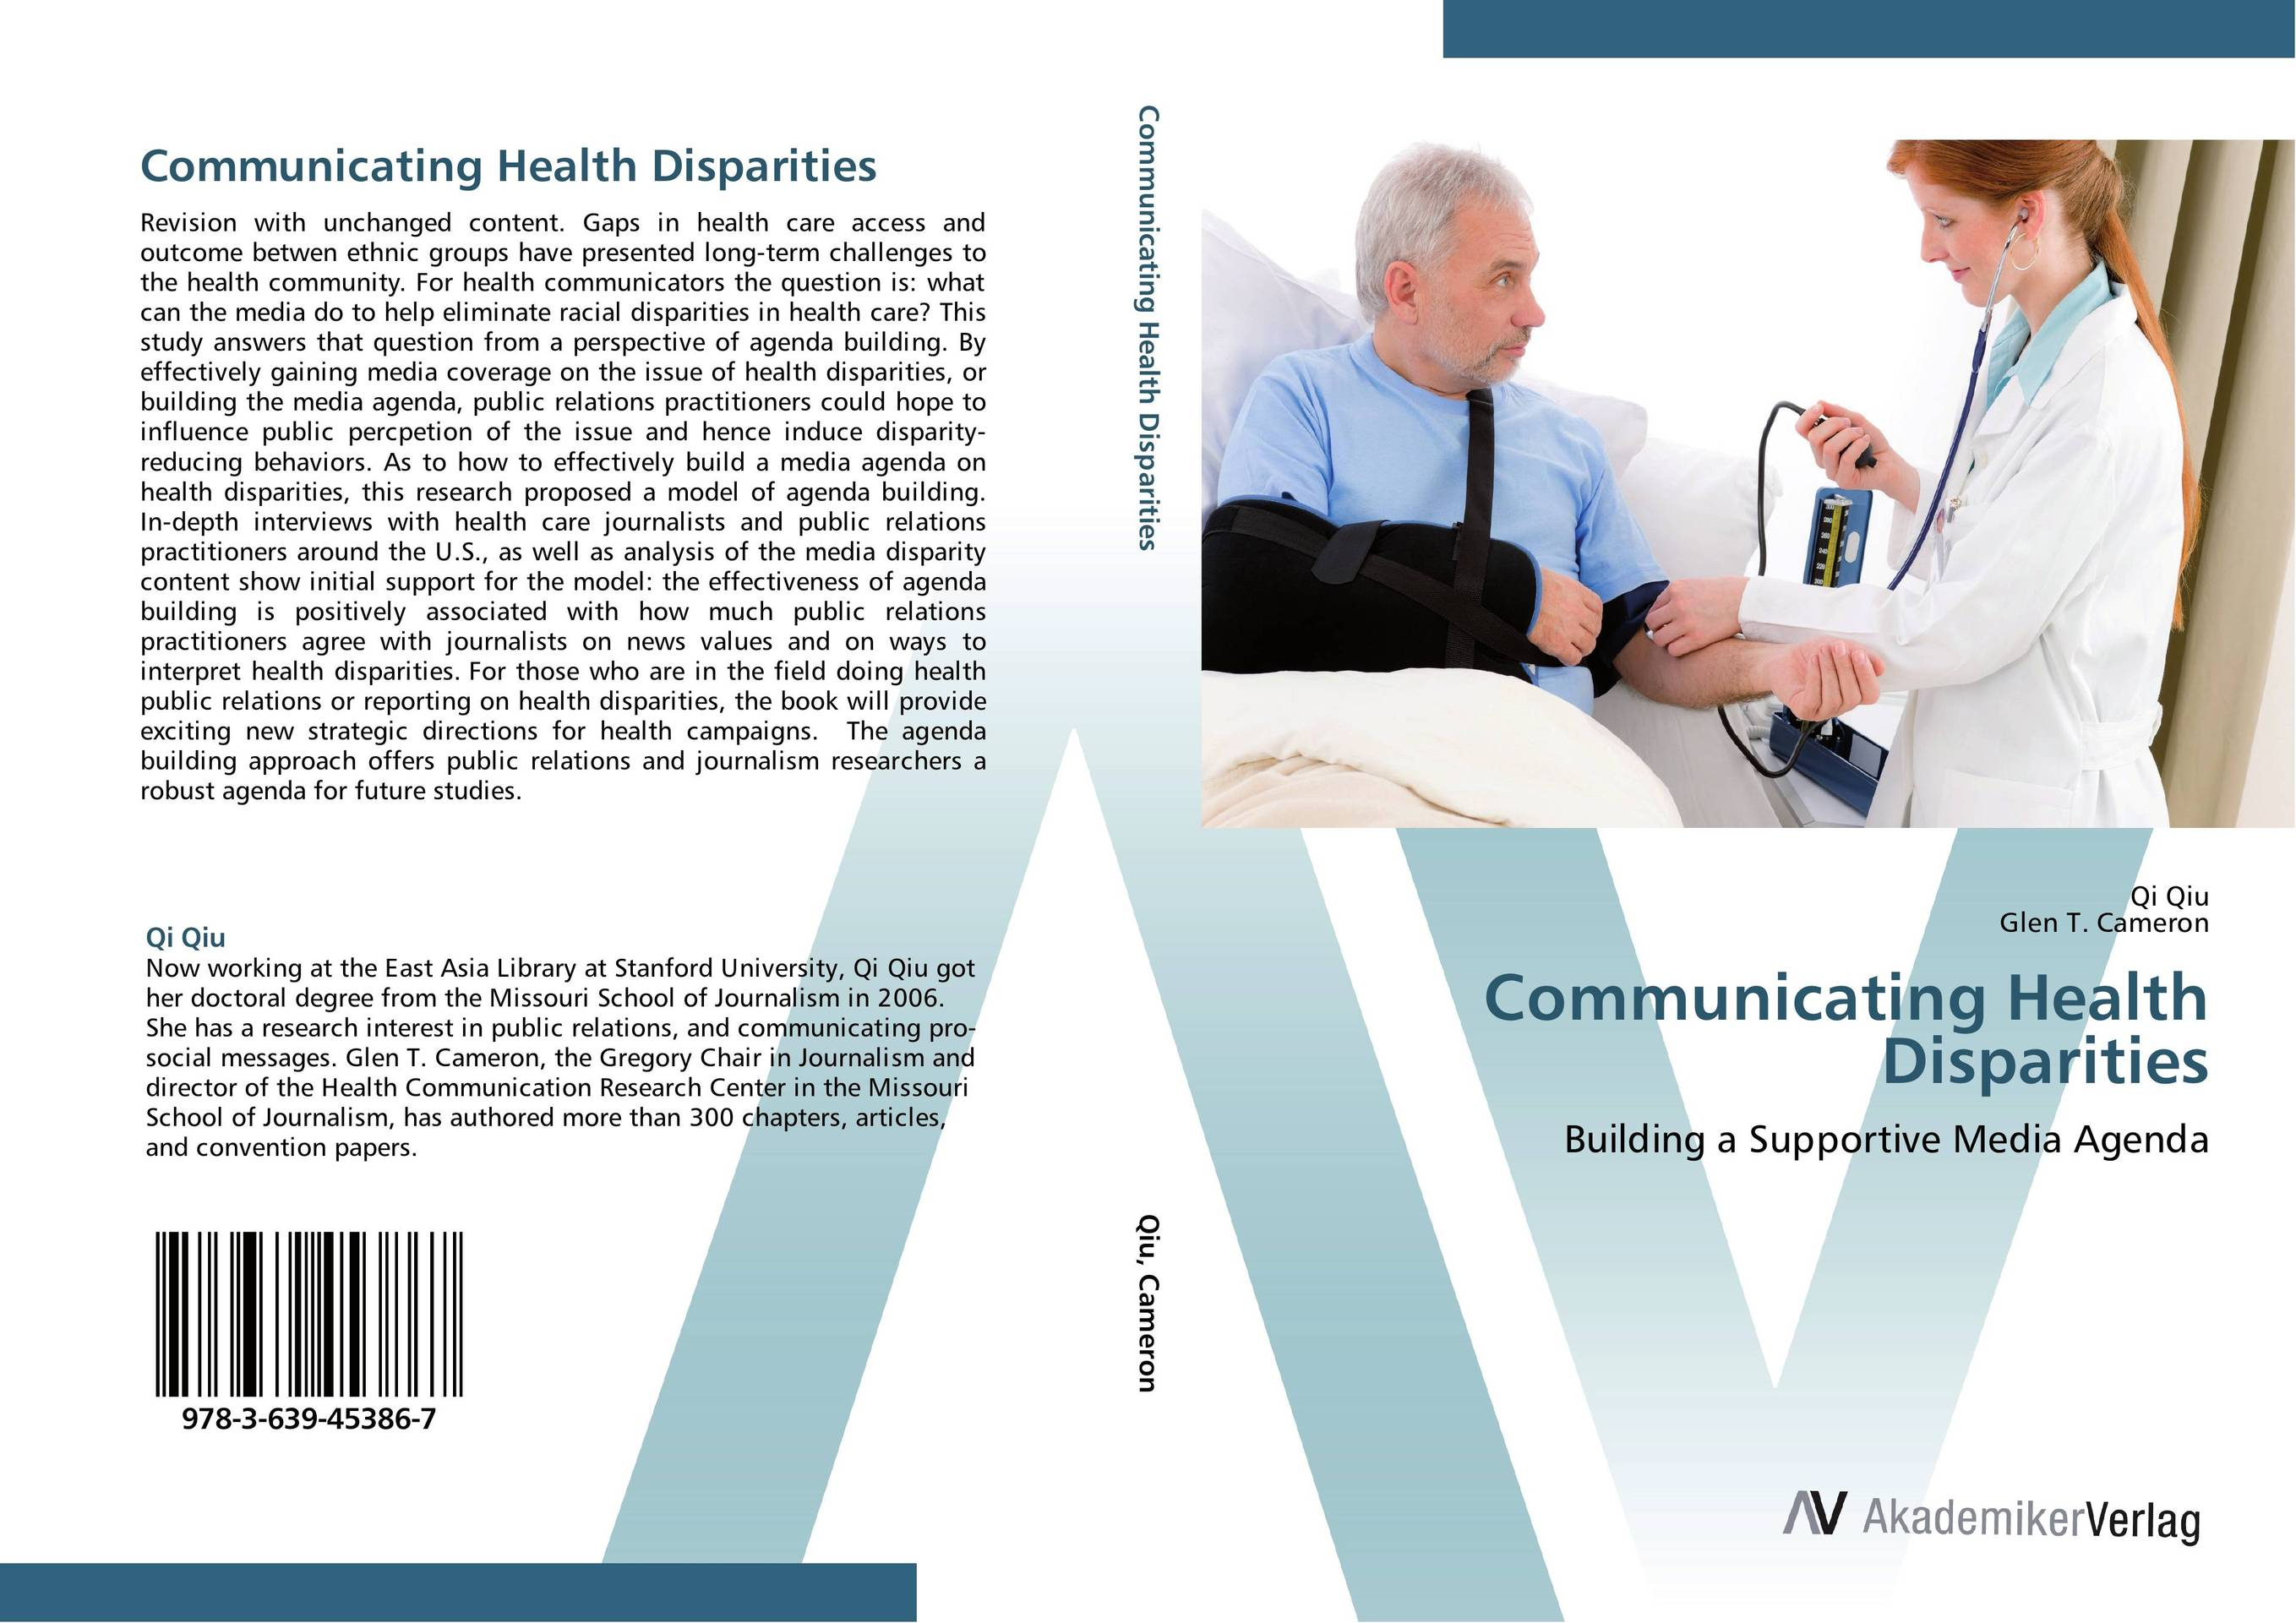 Communicating Health Disparities